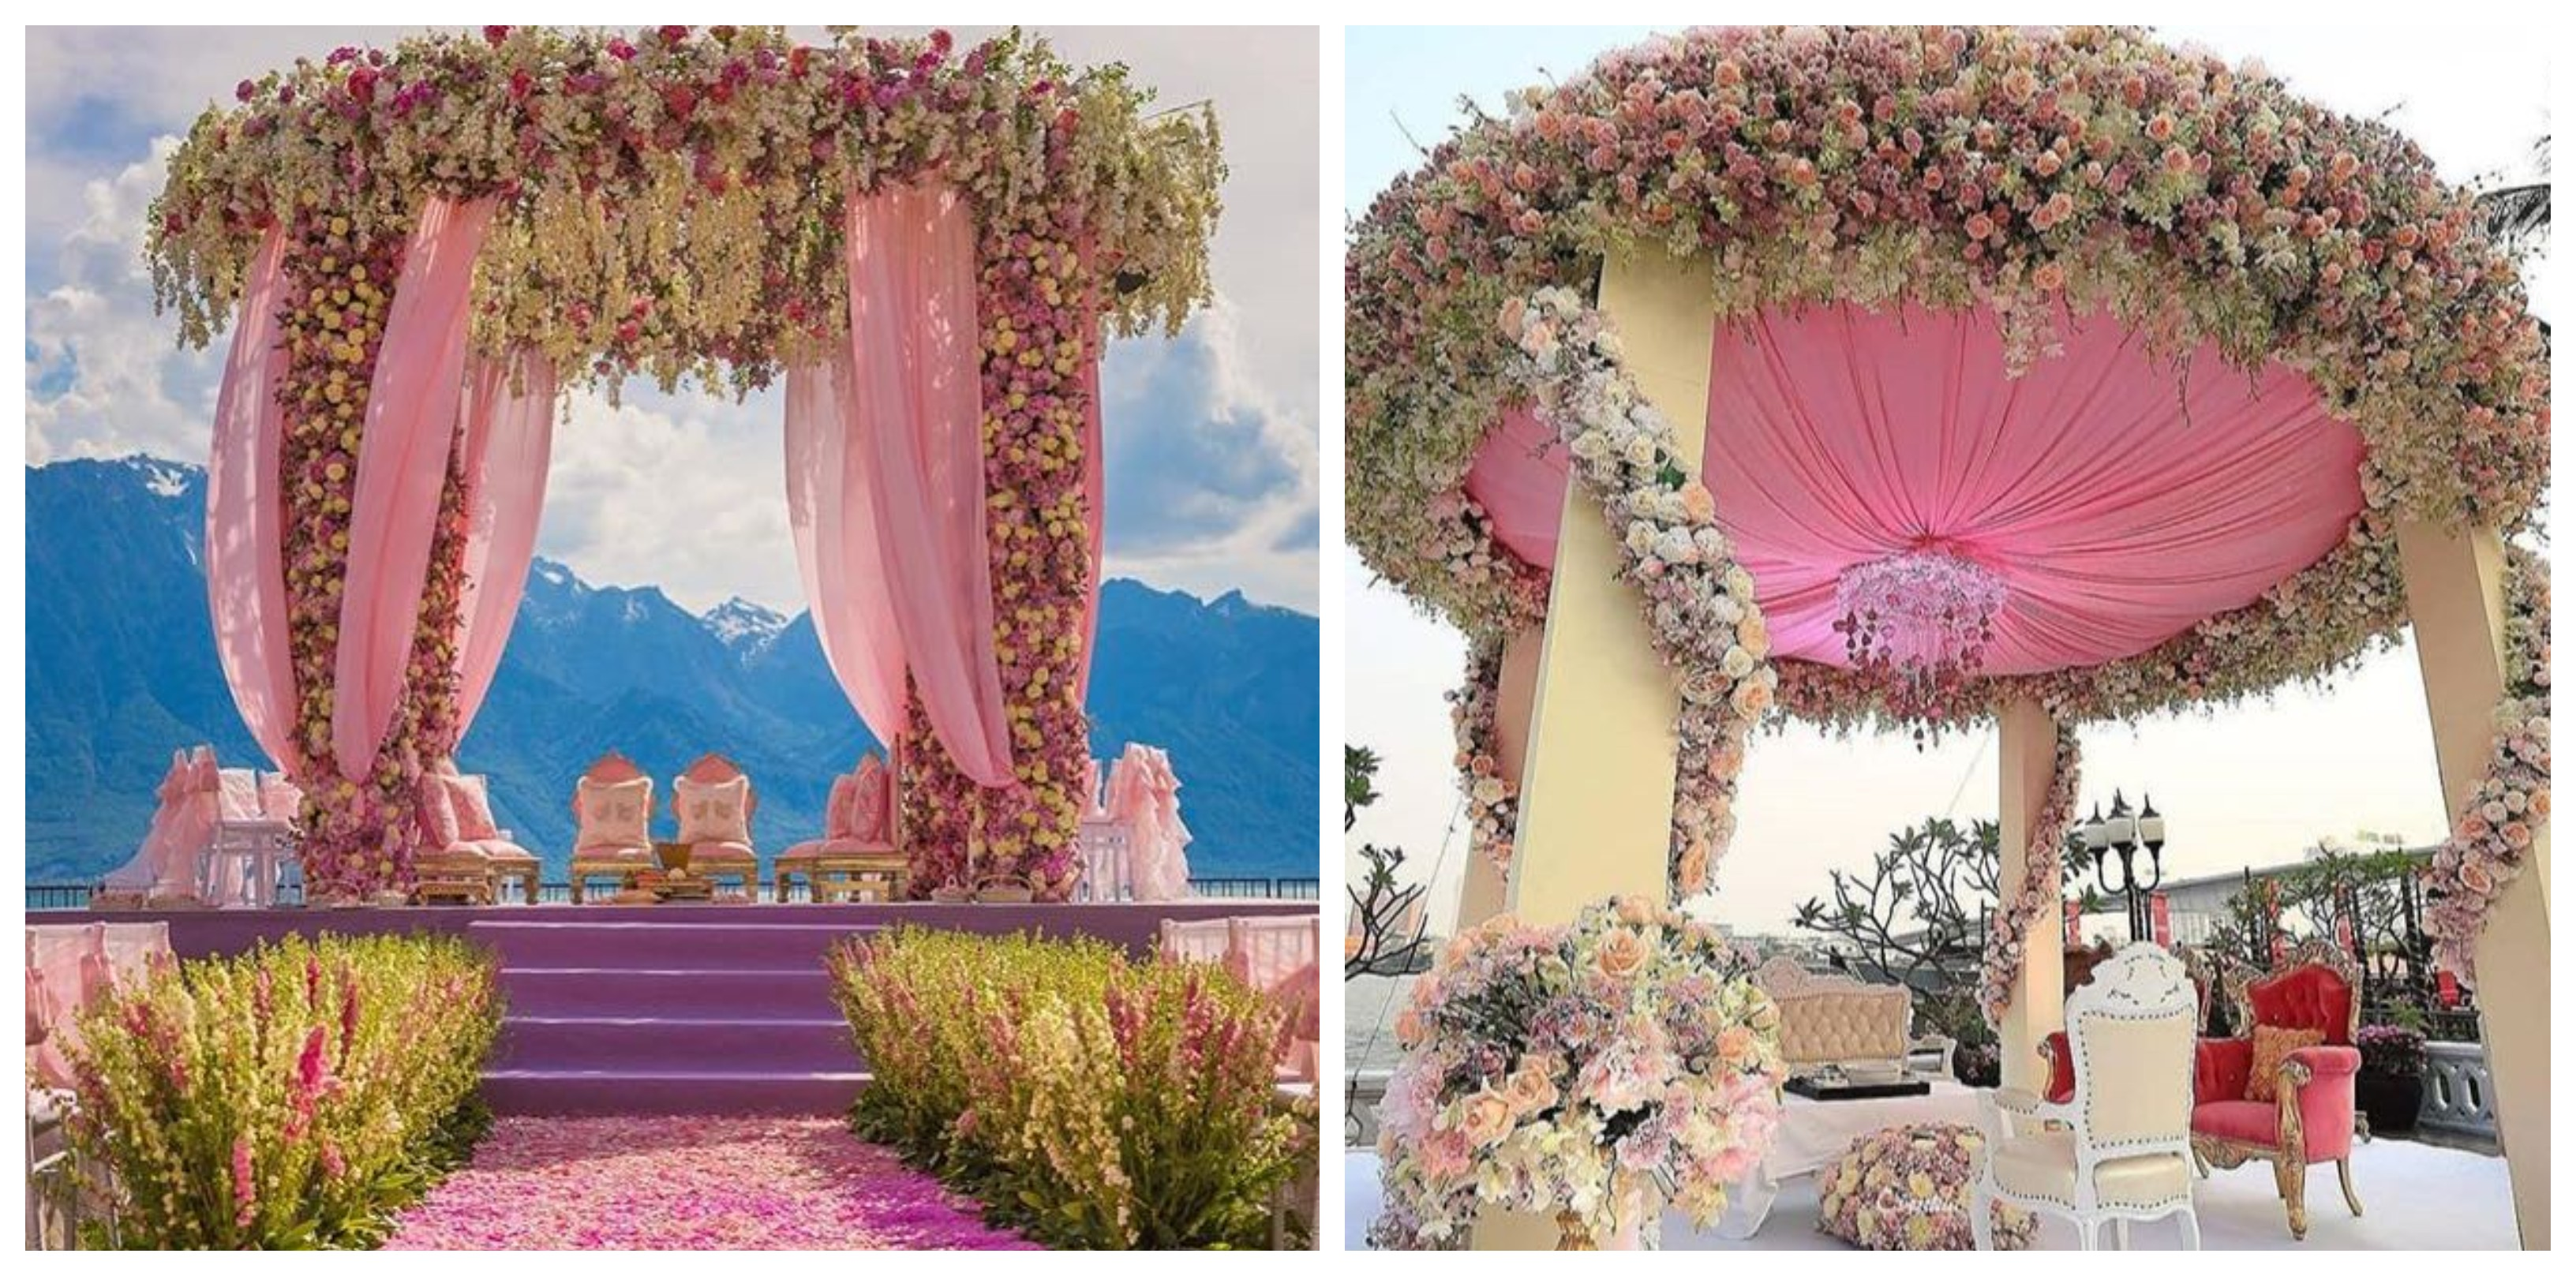 The most gorgeous outdoor wedding mandap decoration ideas we came across |  Real Wedding Stories | Wedding Blog